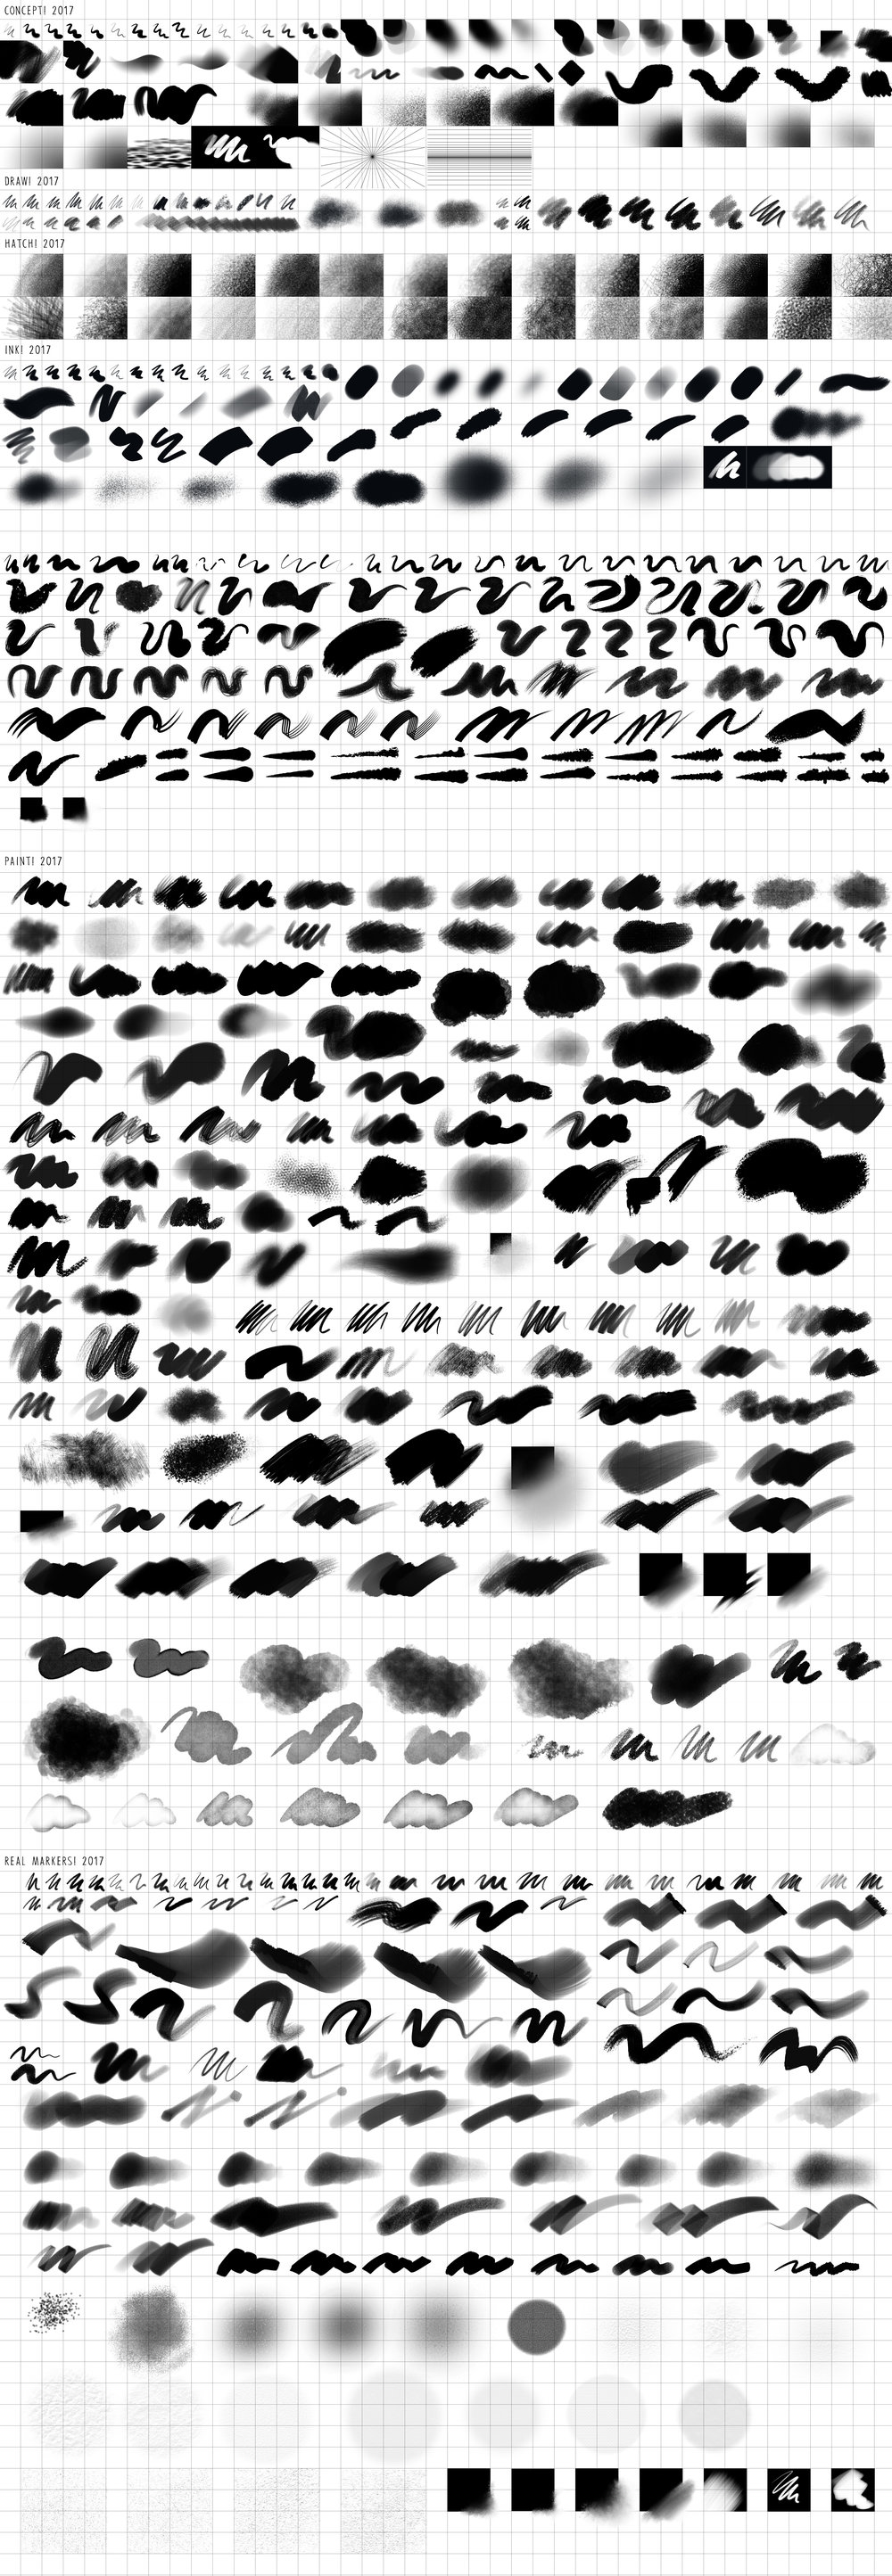 HEJBUSH_ALL_BRUSHES.jpg